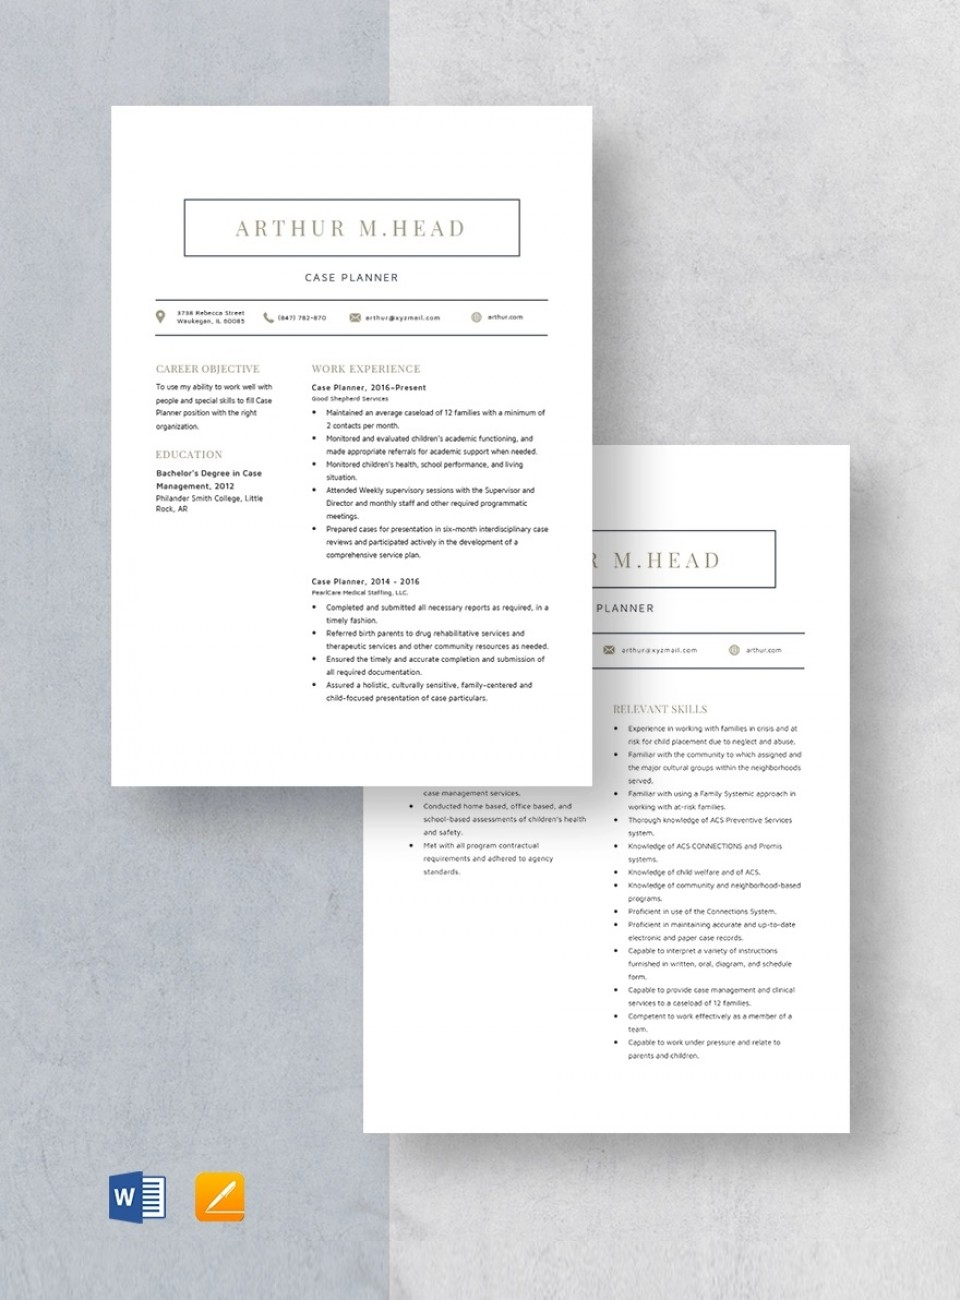 Template Case Planner Resume 960